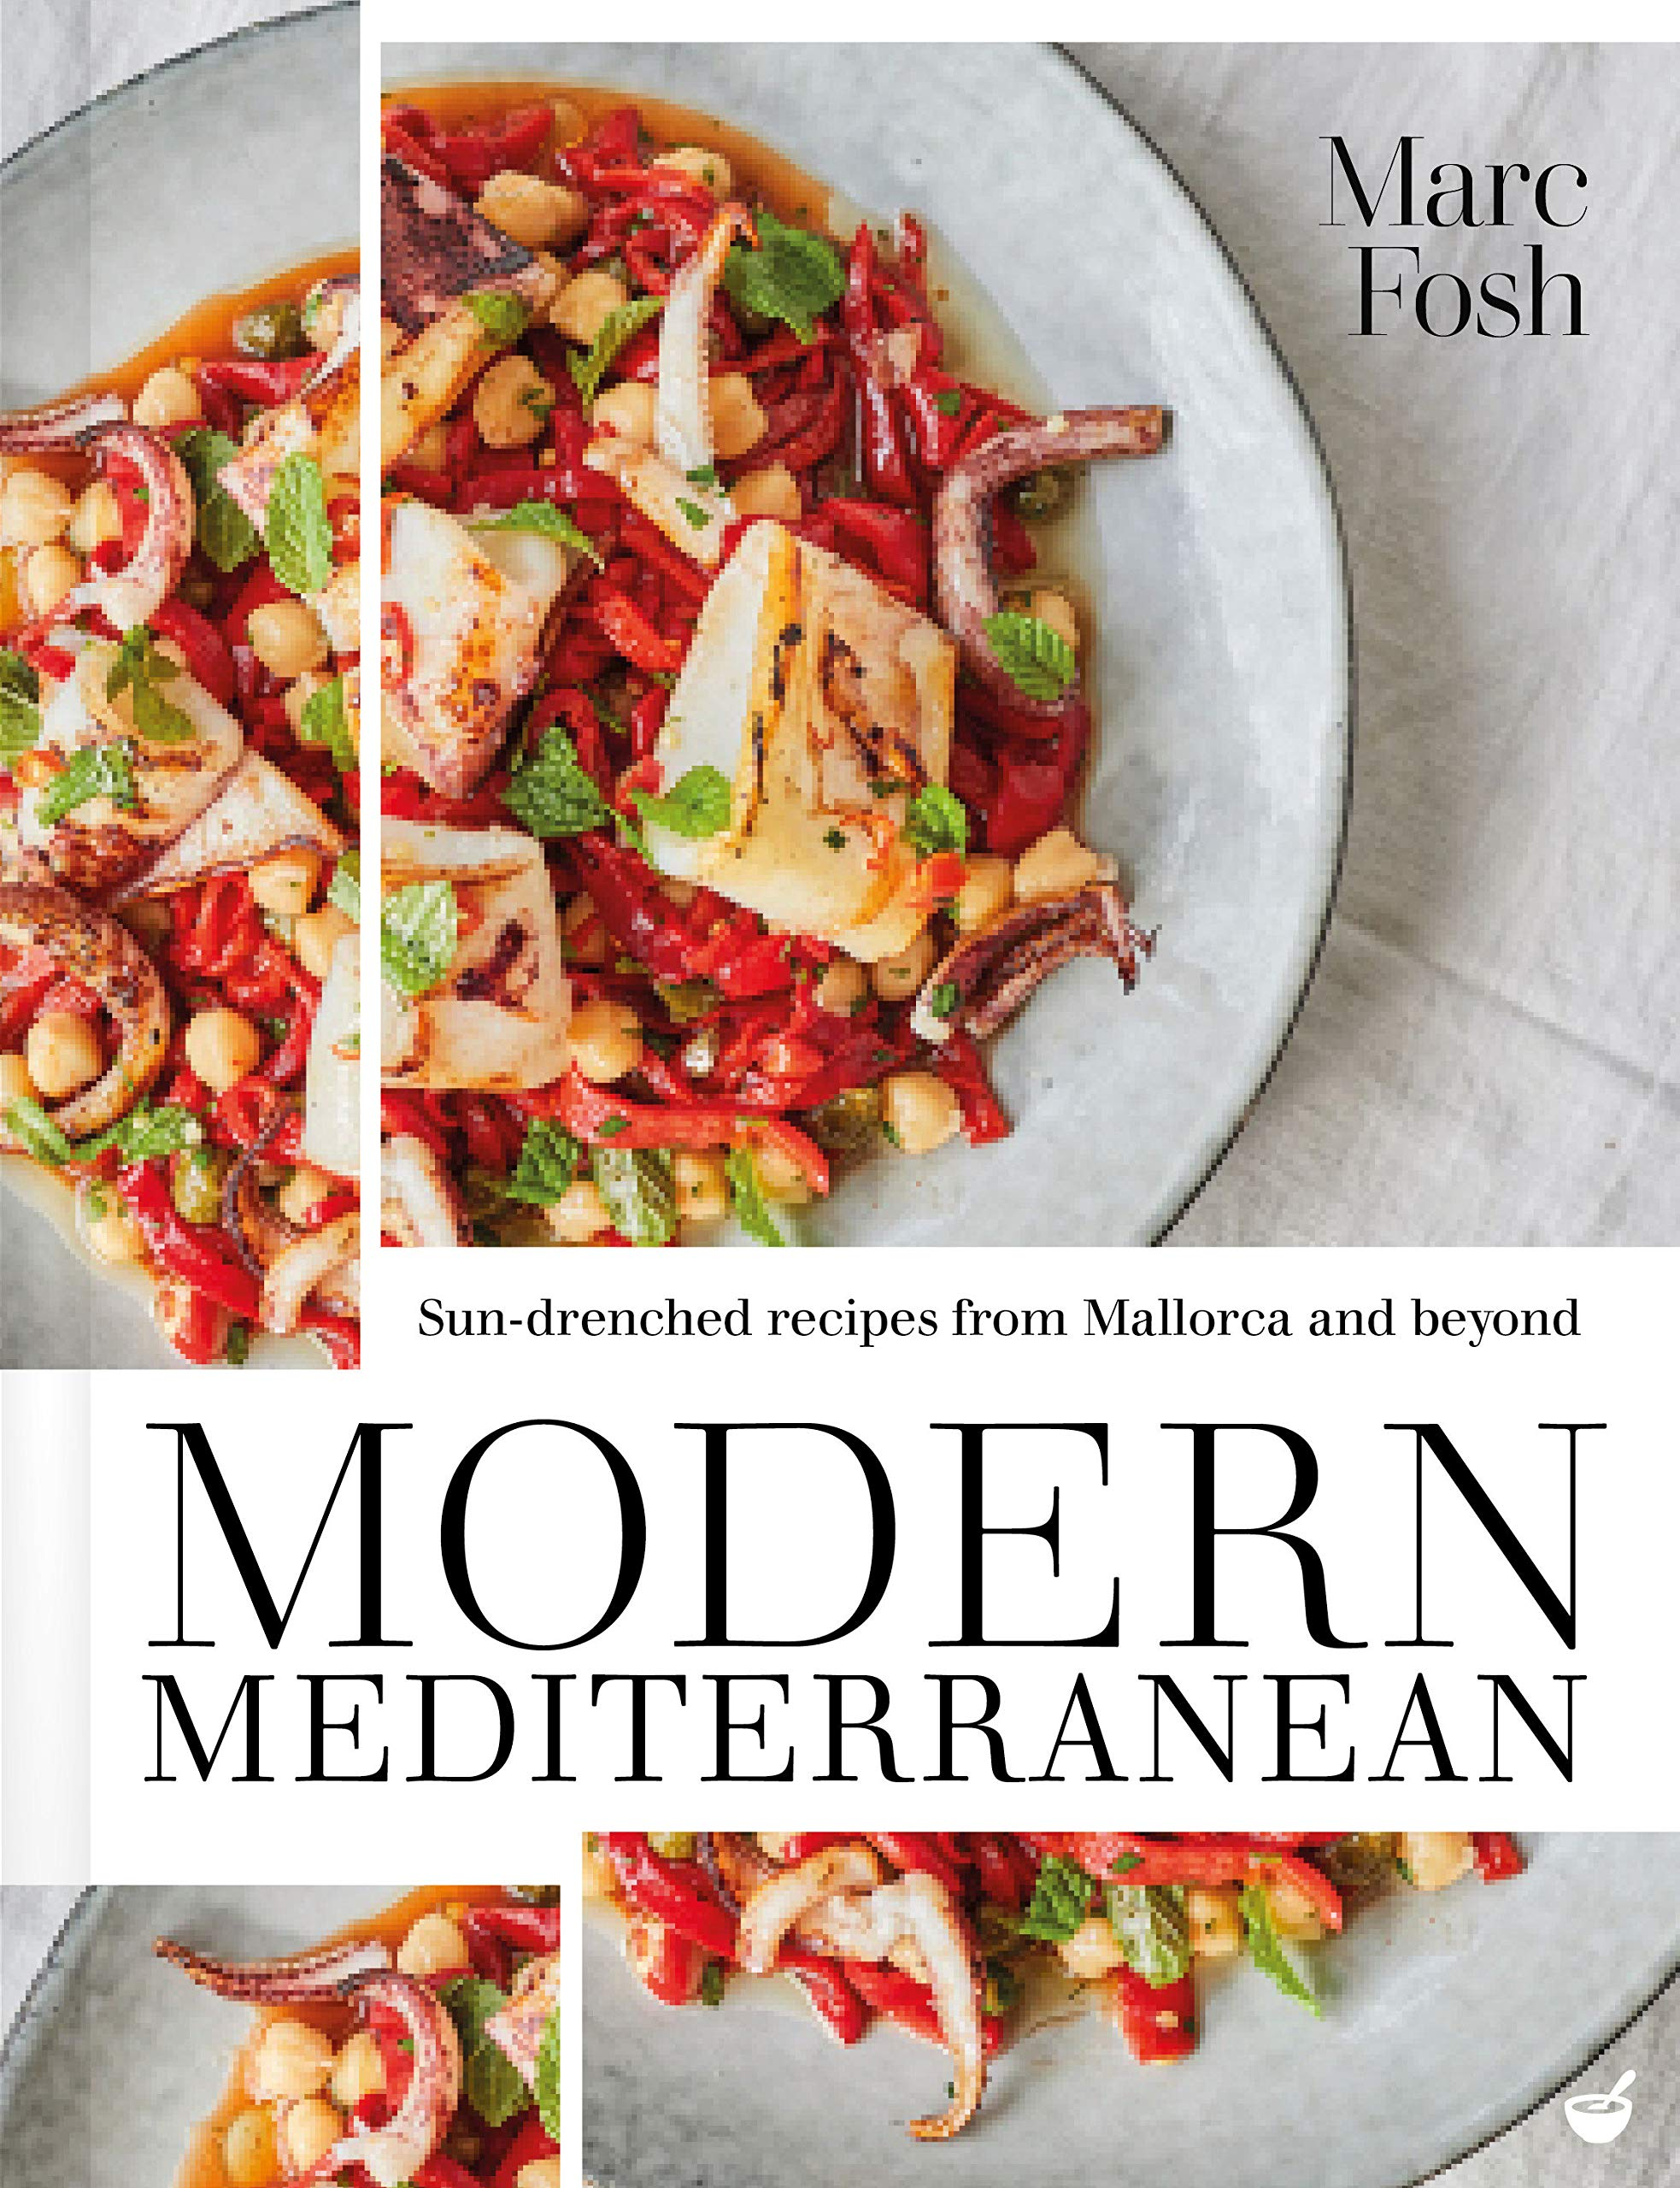 Sun-drenched recipes from Mallorca and beyond